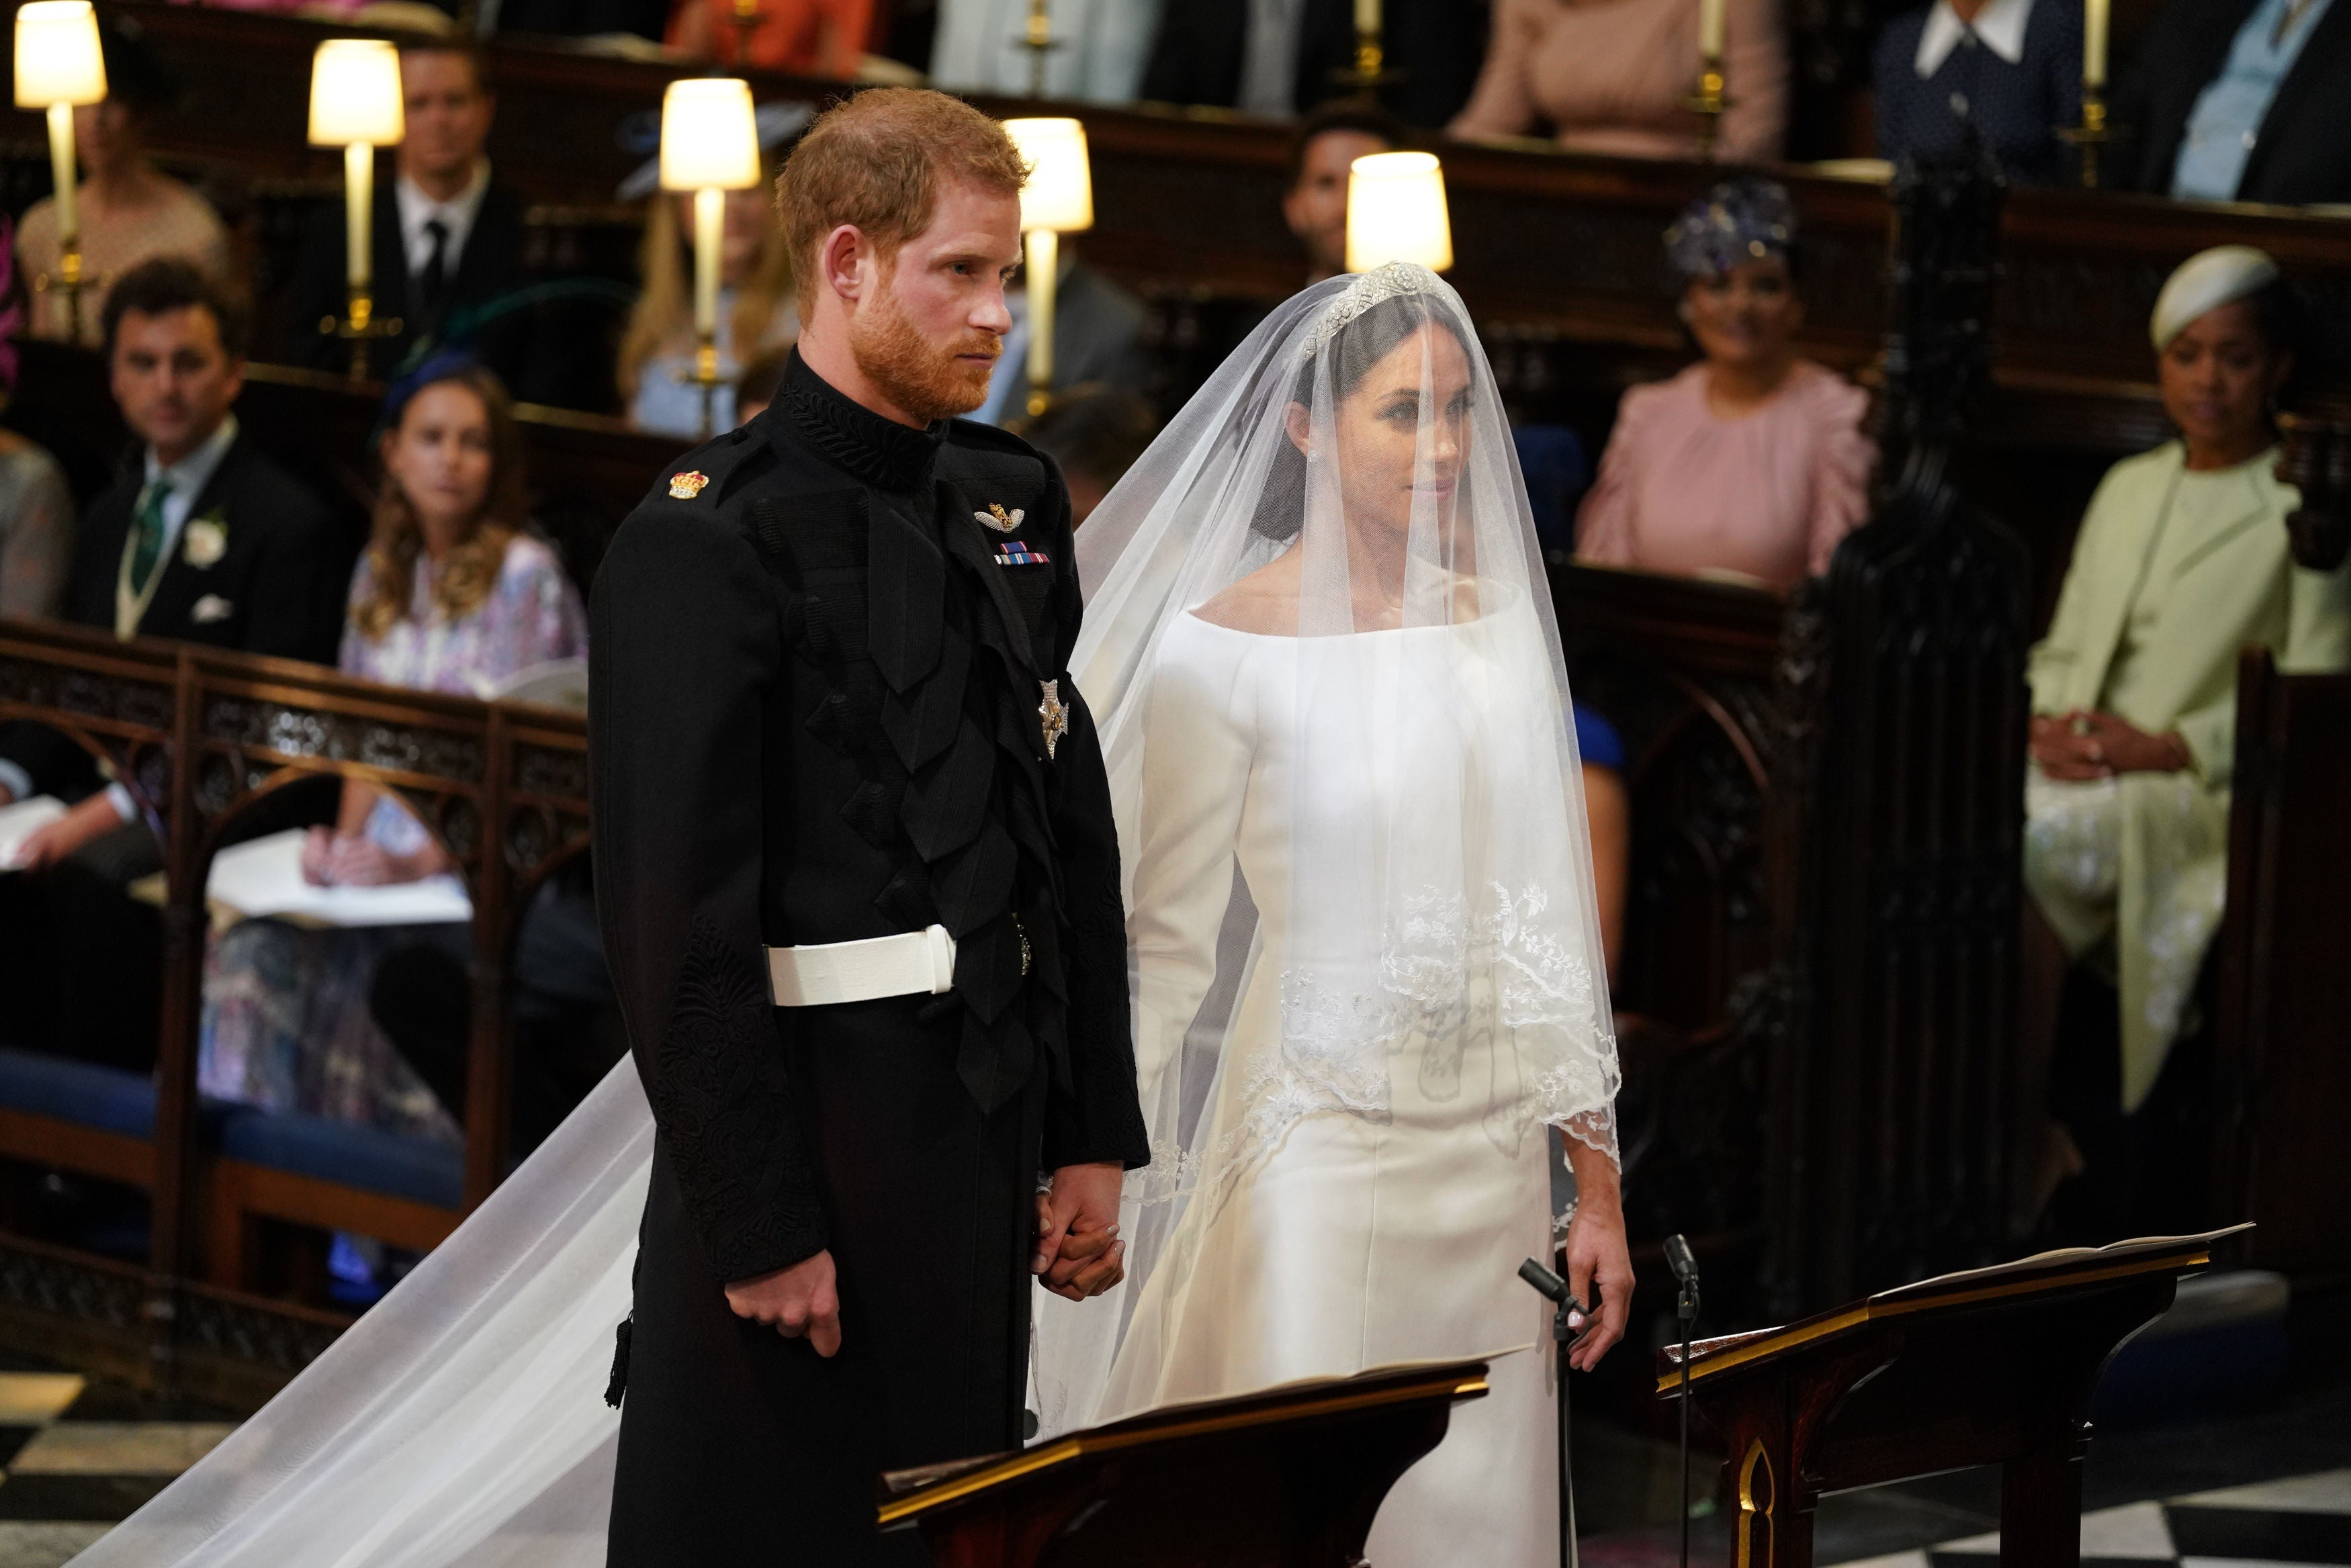 How Meghan Markle Made Sure Her Blackness Was Represented At The Royal Wedding